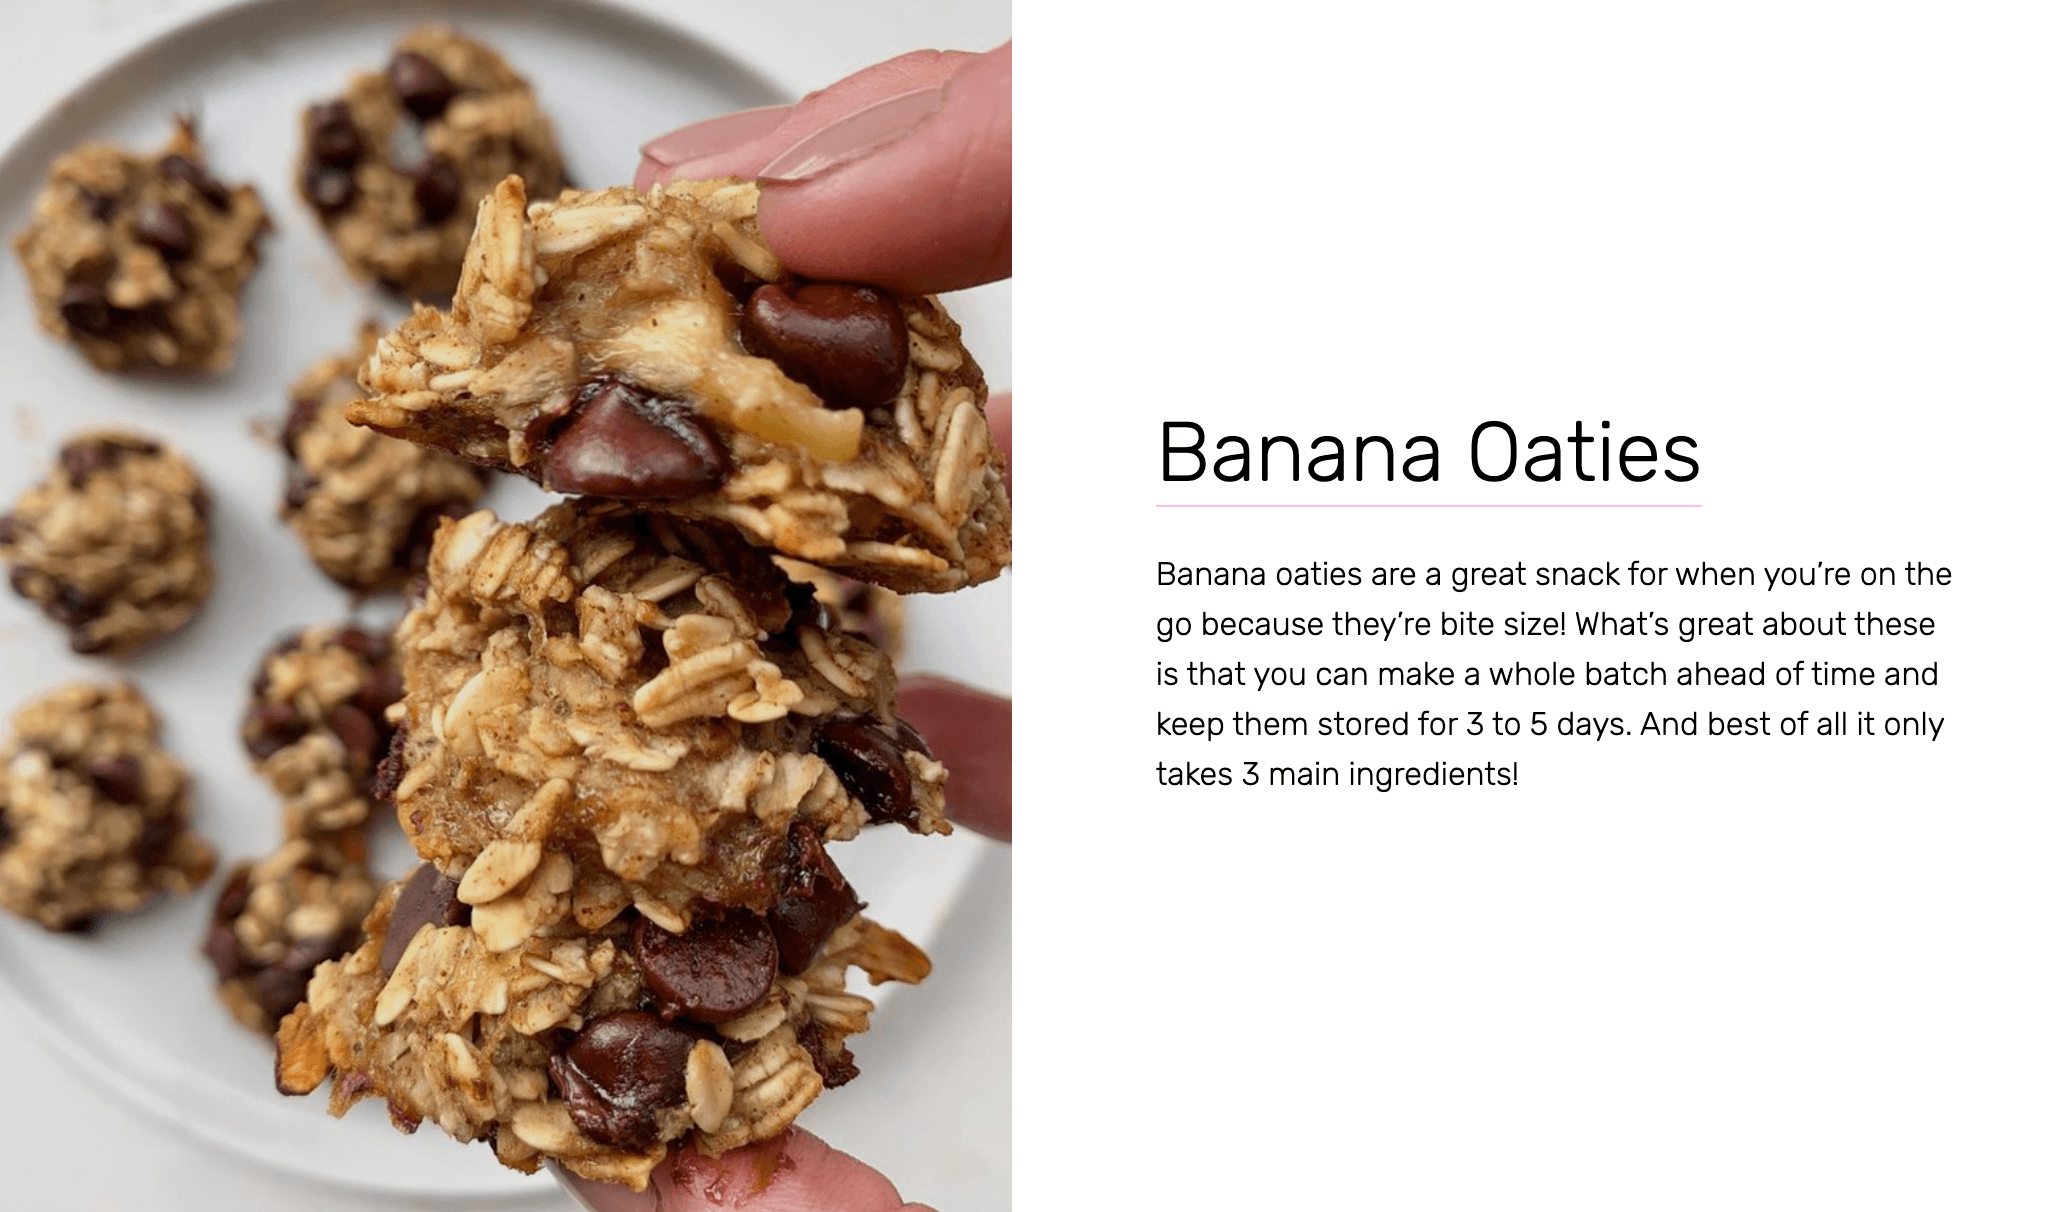 Banana Oaties - Banana oaties are a great snack for when you're on the go because they're bite size! What's great about these is that you can make a whole batch ahead of time and keep them stored for 3 to 5 days. And best of all it only takes 3 main ingredients!